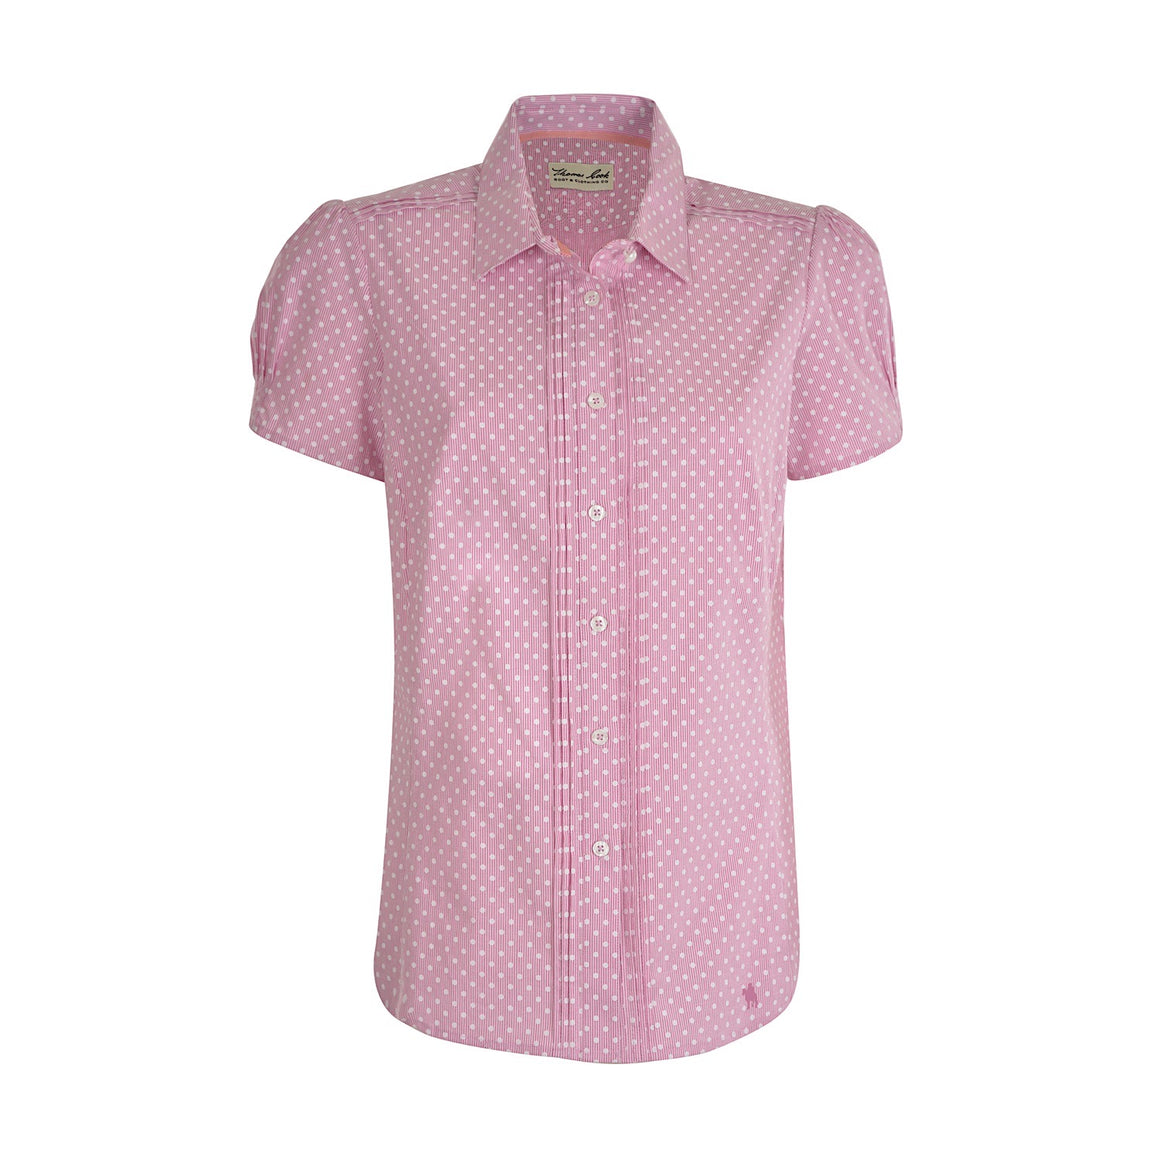 Thomas Cook Women's Cooma S/S Shirt Pink/Orchid